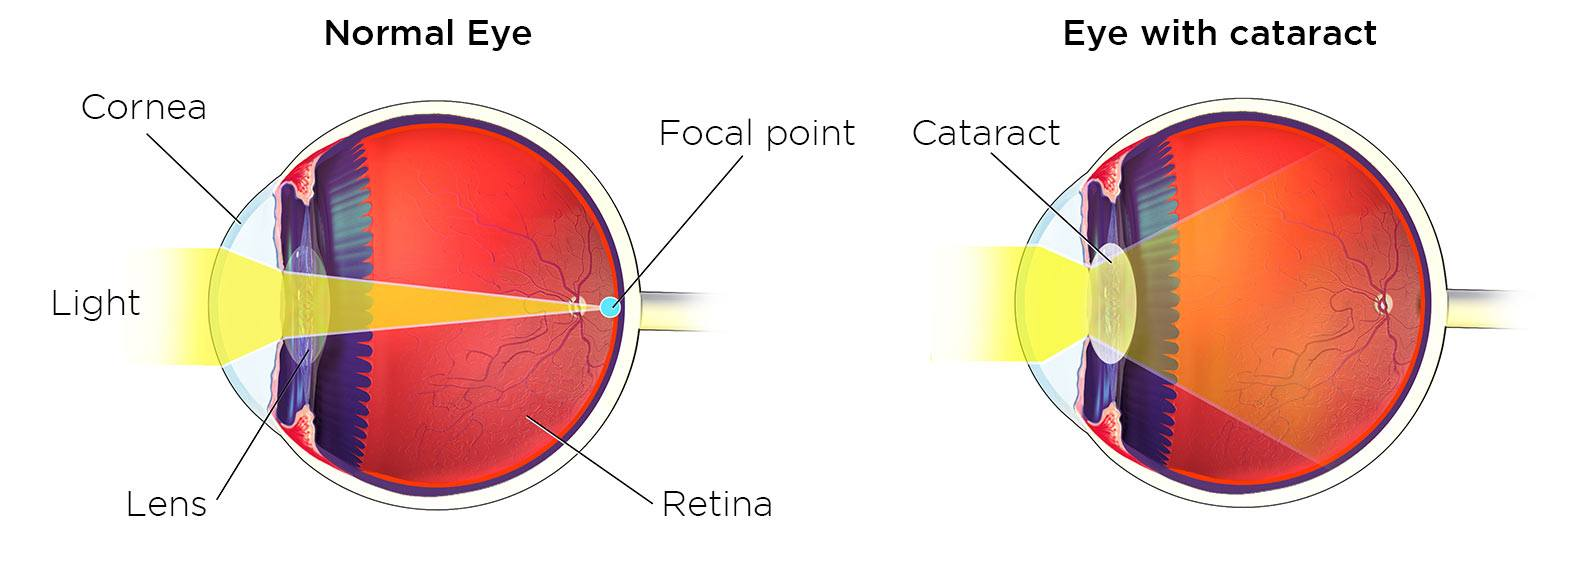 Eyes with cataract